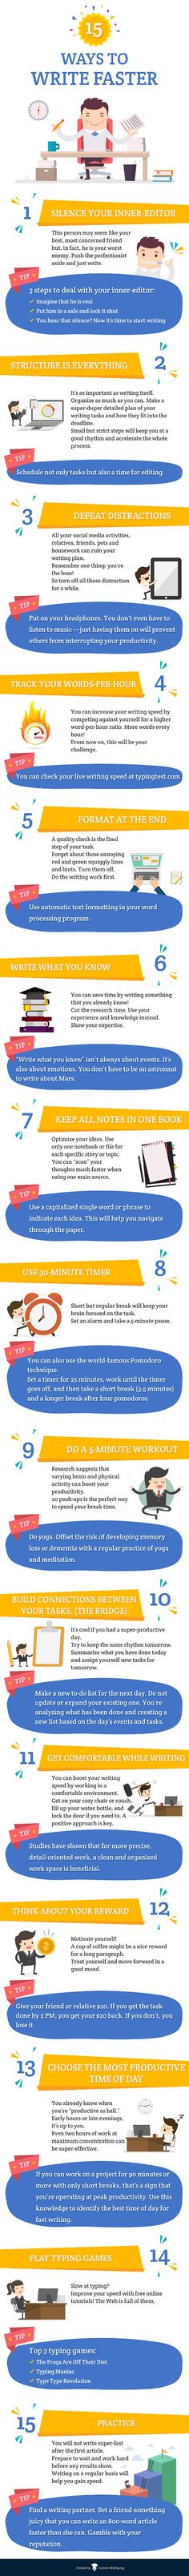 15 Tips to Help You Write Faster [Infographic]